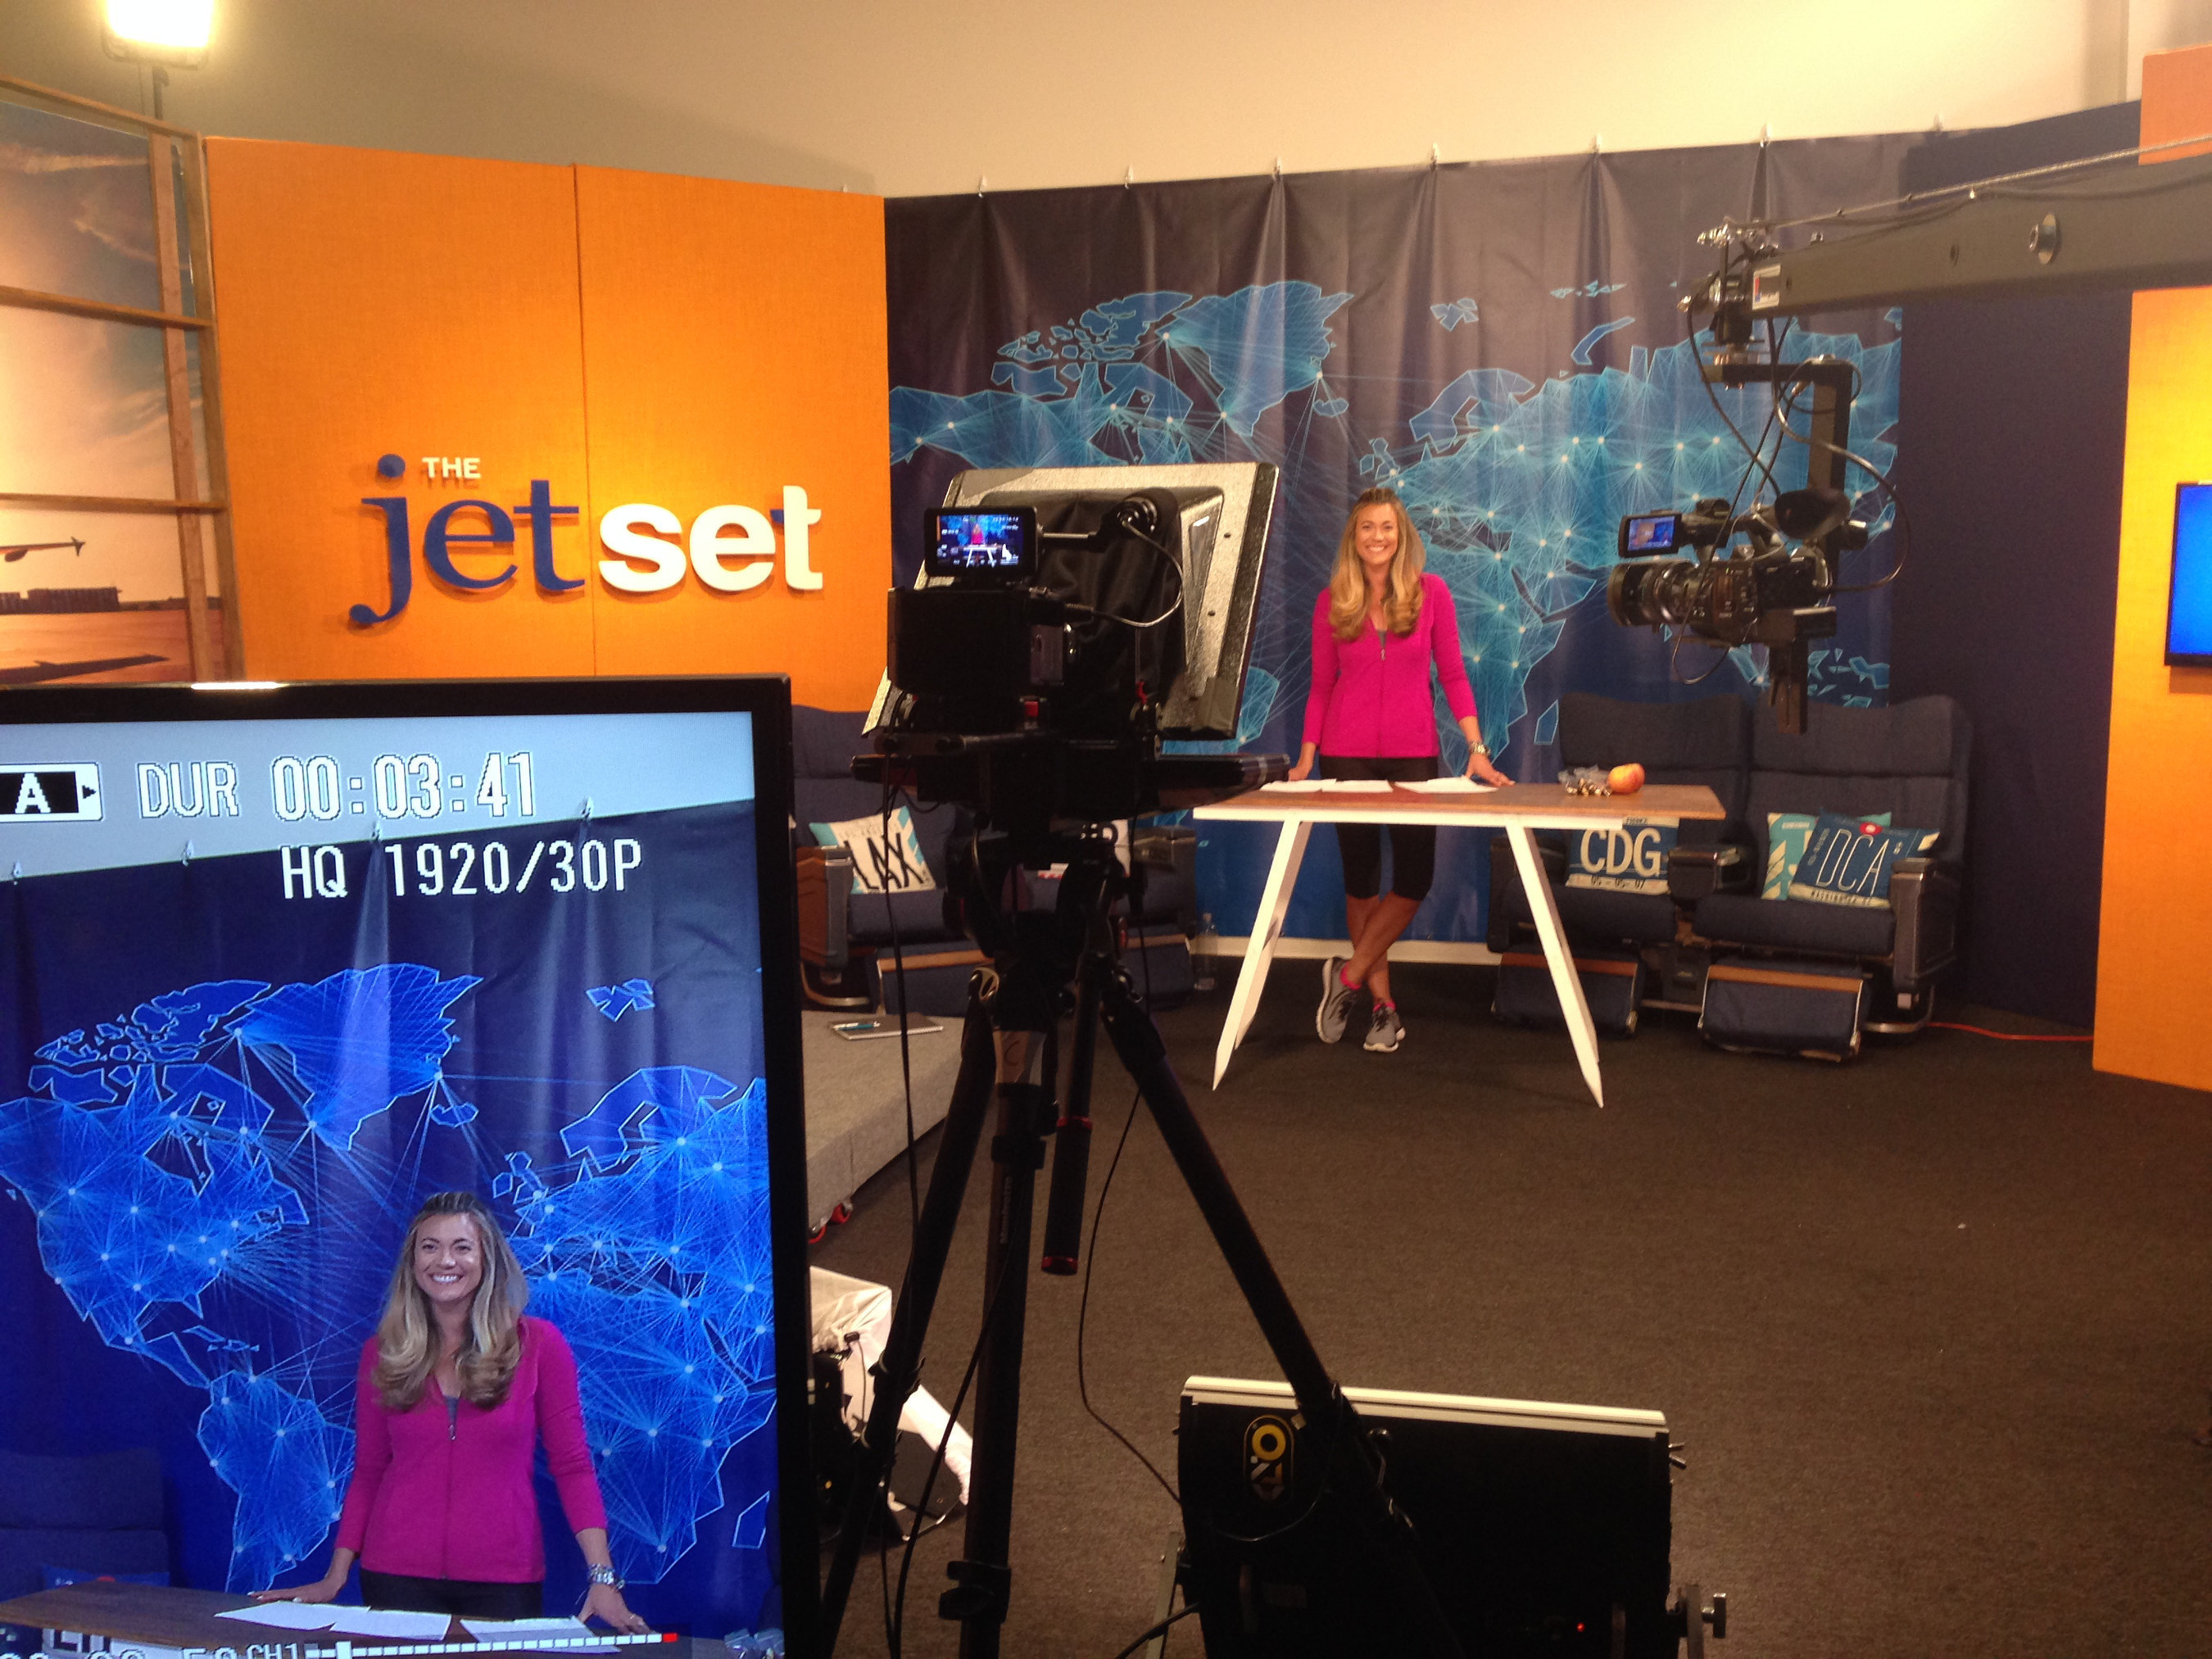 Health and Wellness Coach Nikki Noya Joins the Cast of The Jet Set